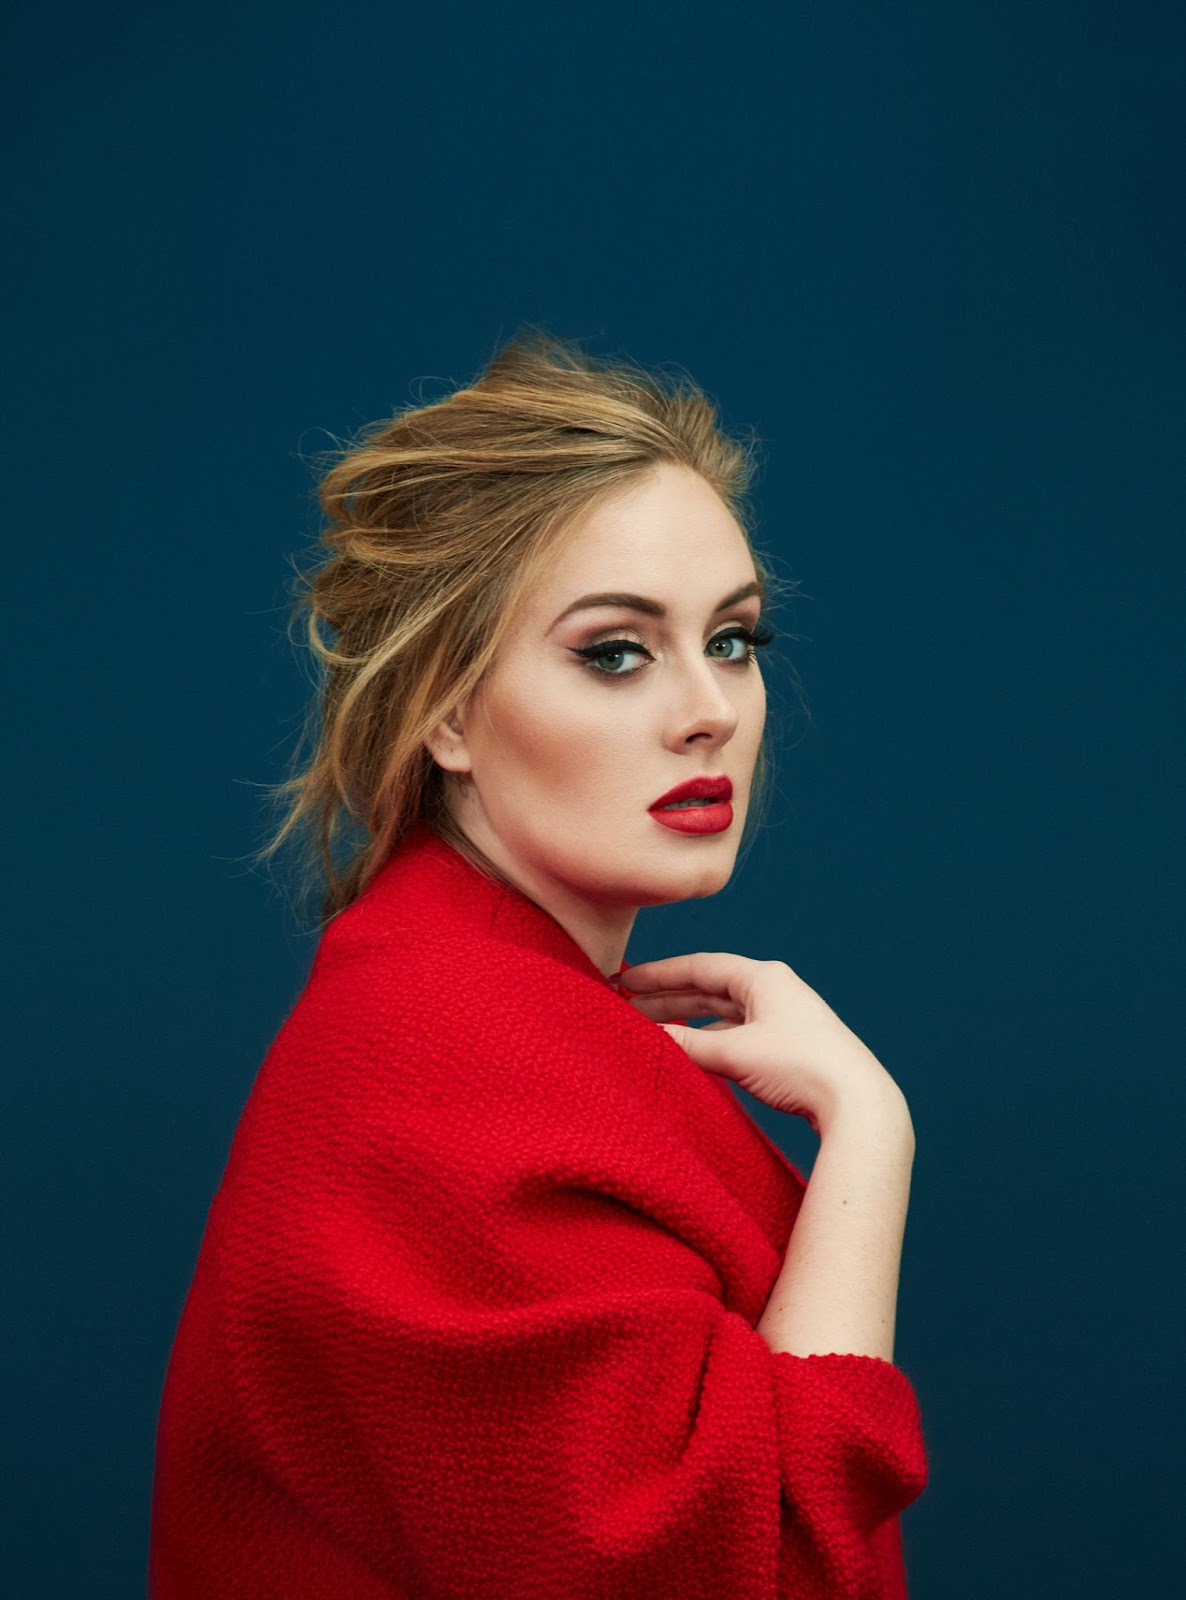 Adele In Time Magazine December 28th, 2015 By Erik Madigan